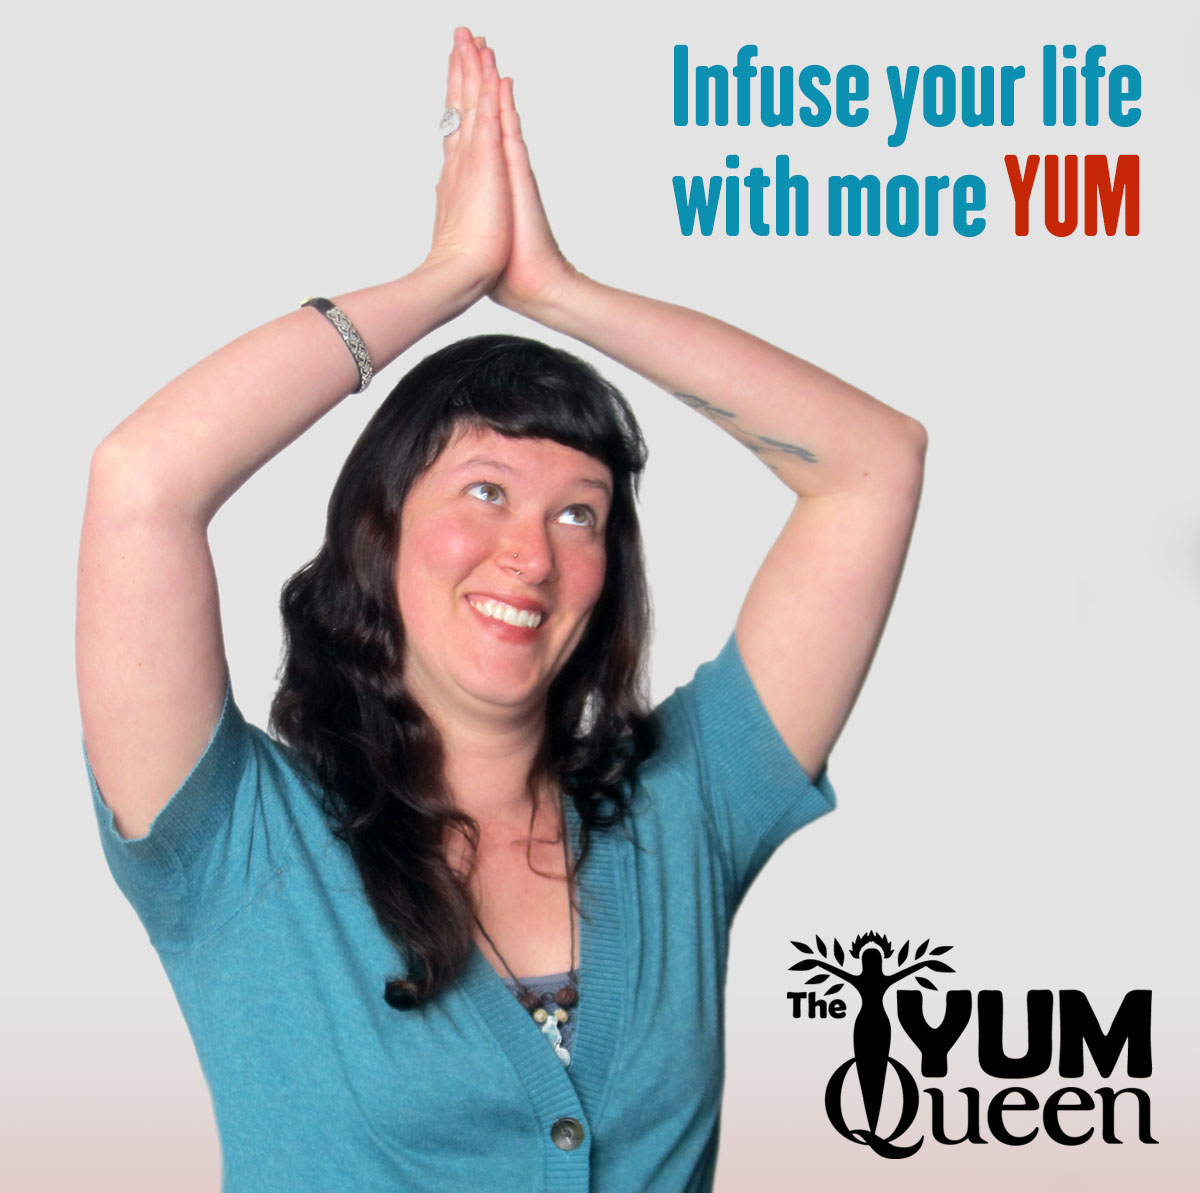 The Yum Queen - Infuse your life with more YUM!